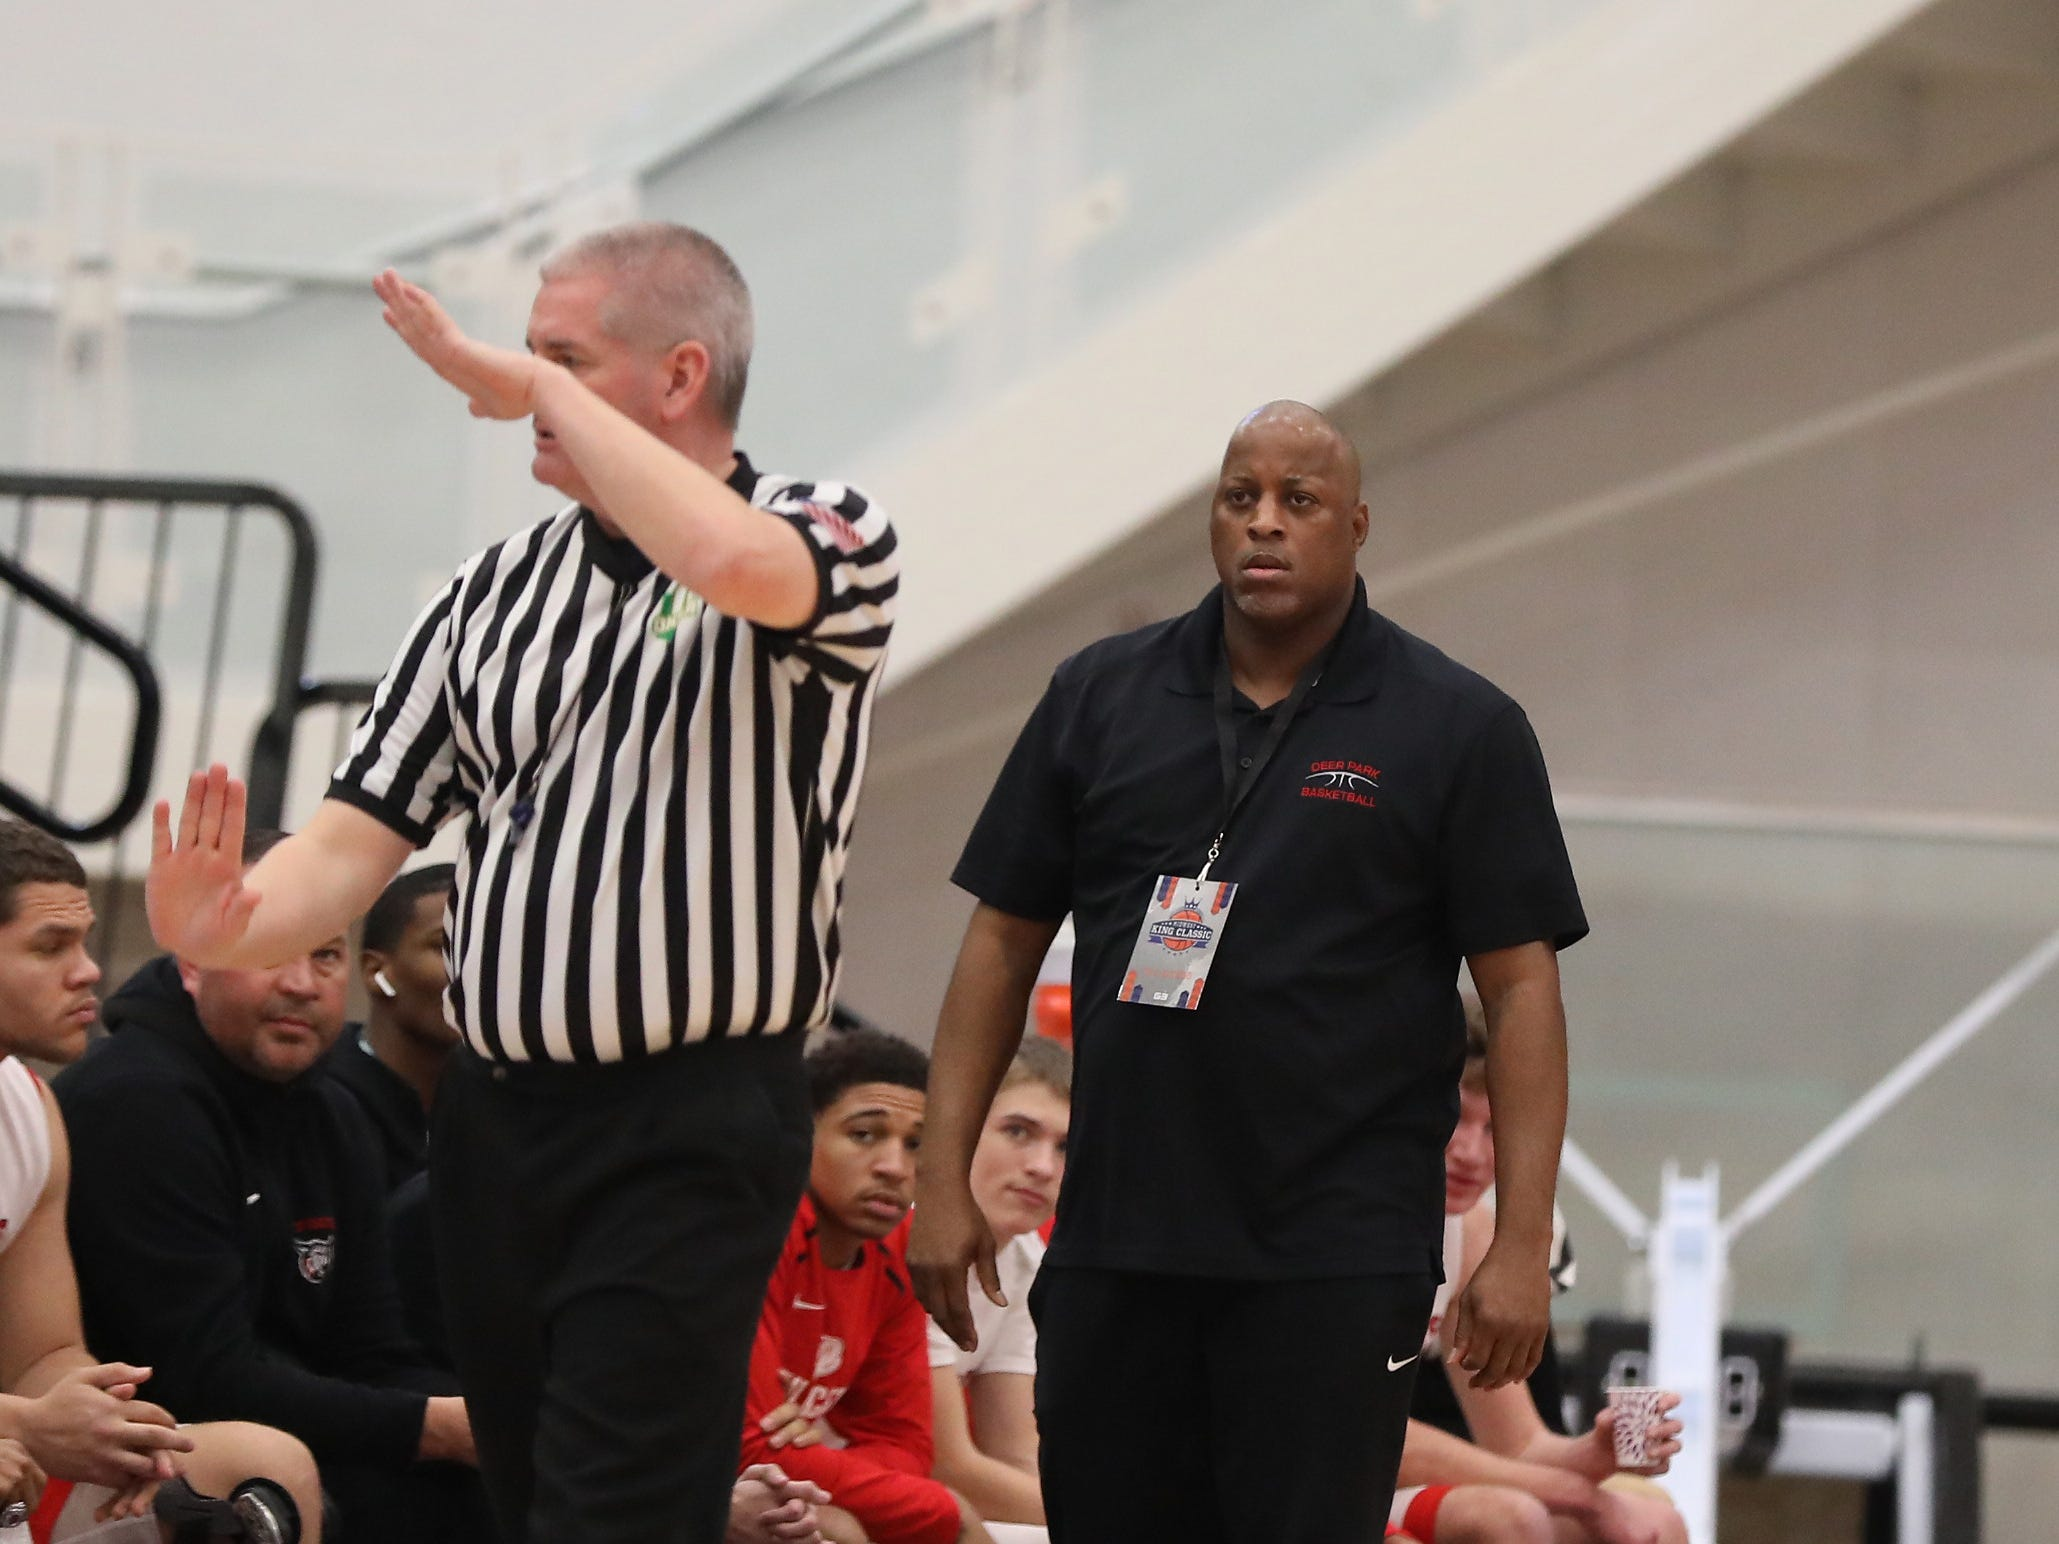 Deer Park head coach Steve Gentry gets teed up by an official during their basketball game against Purcell Marian Sunday, Jan. 20, 2019.